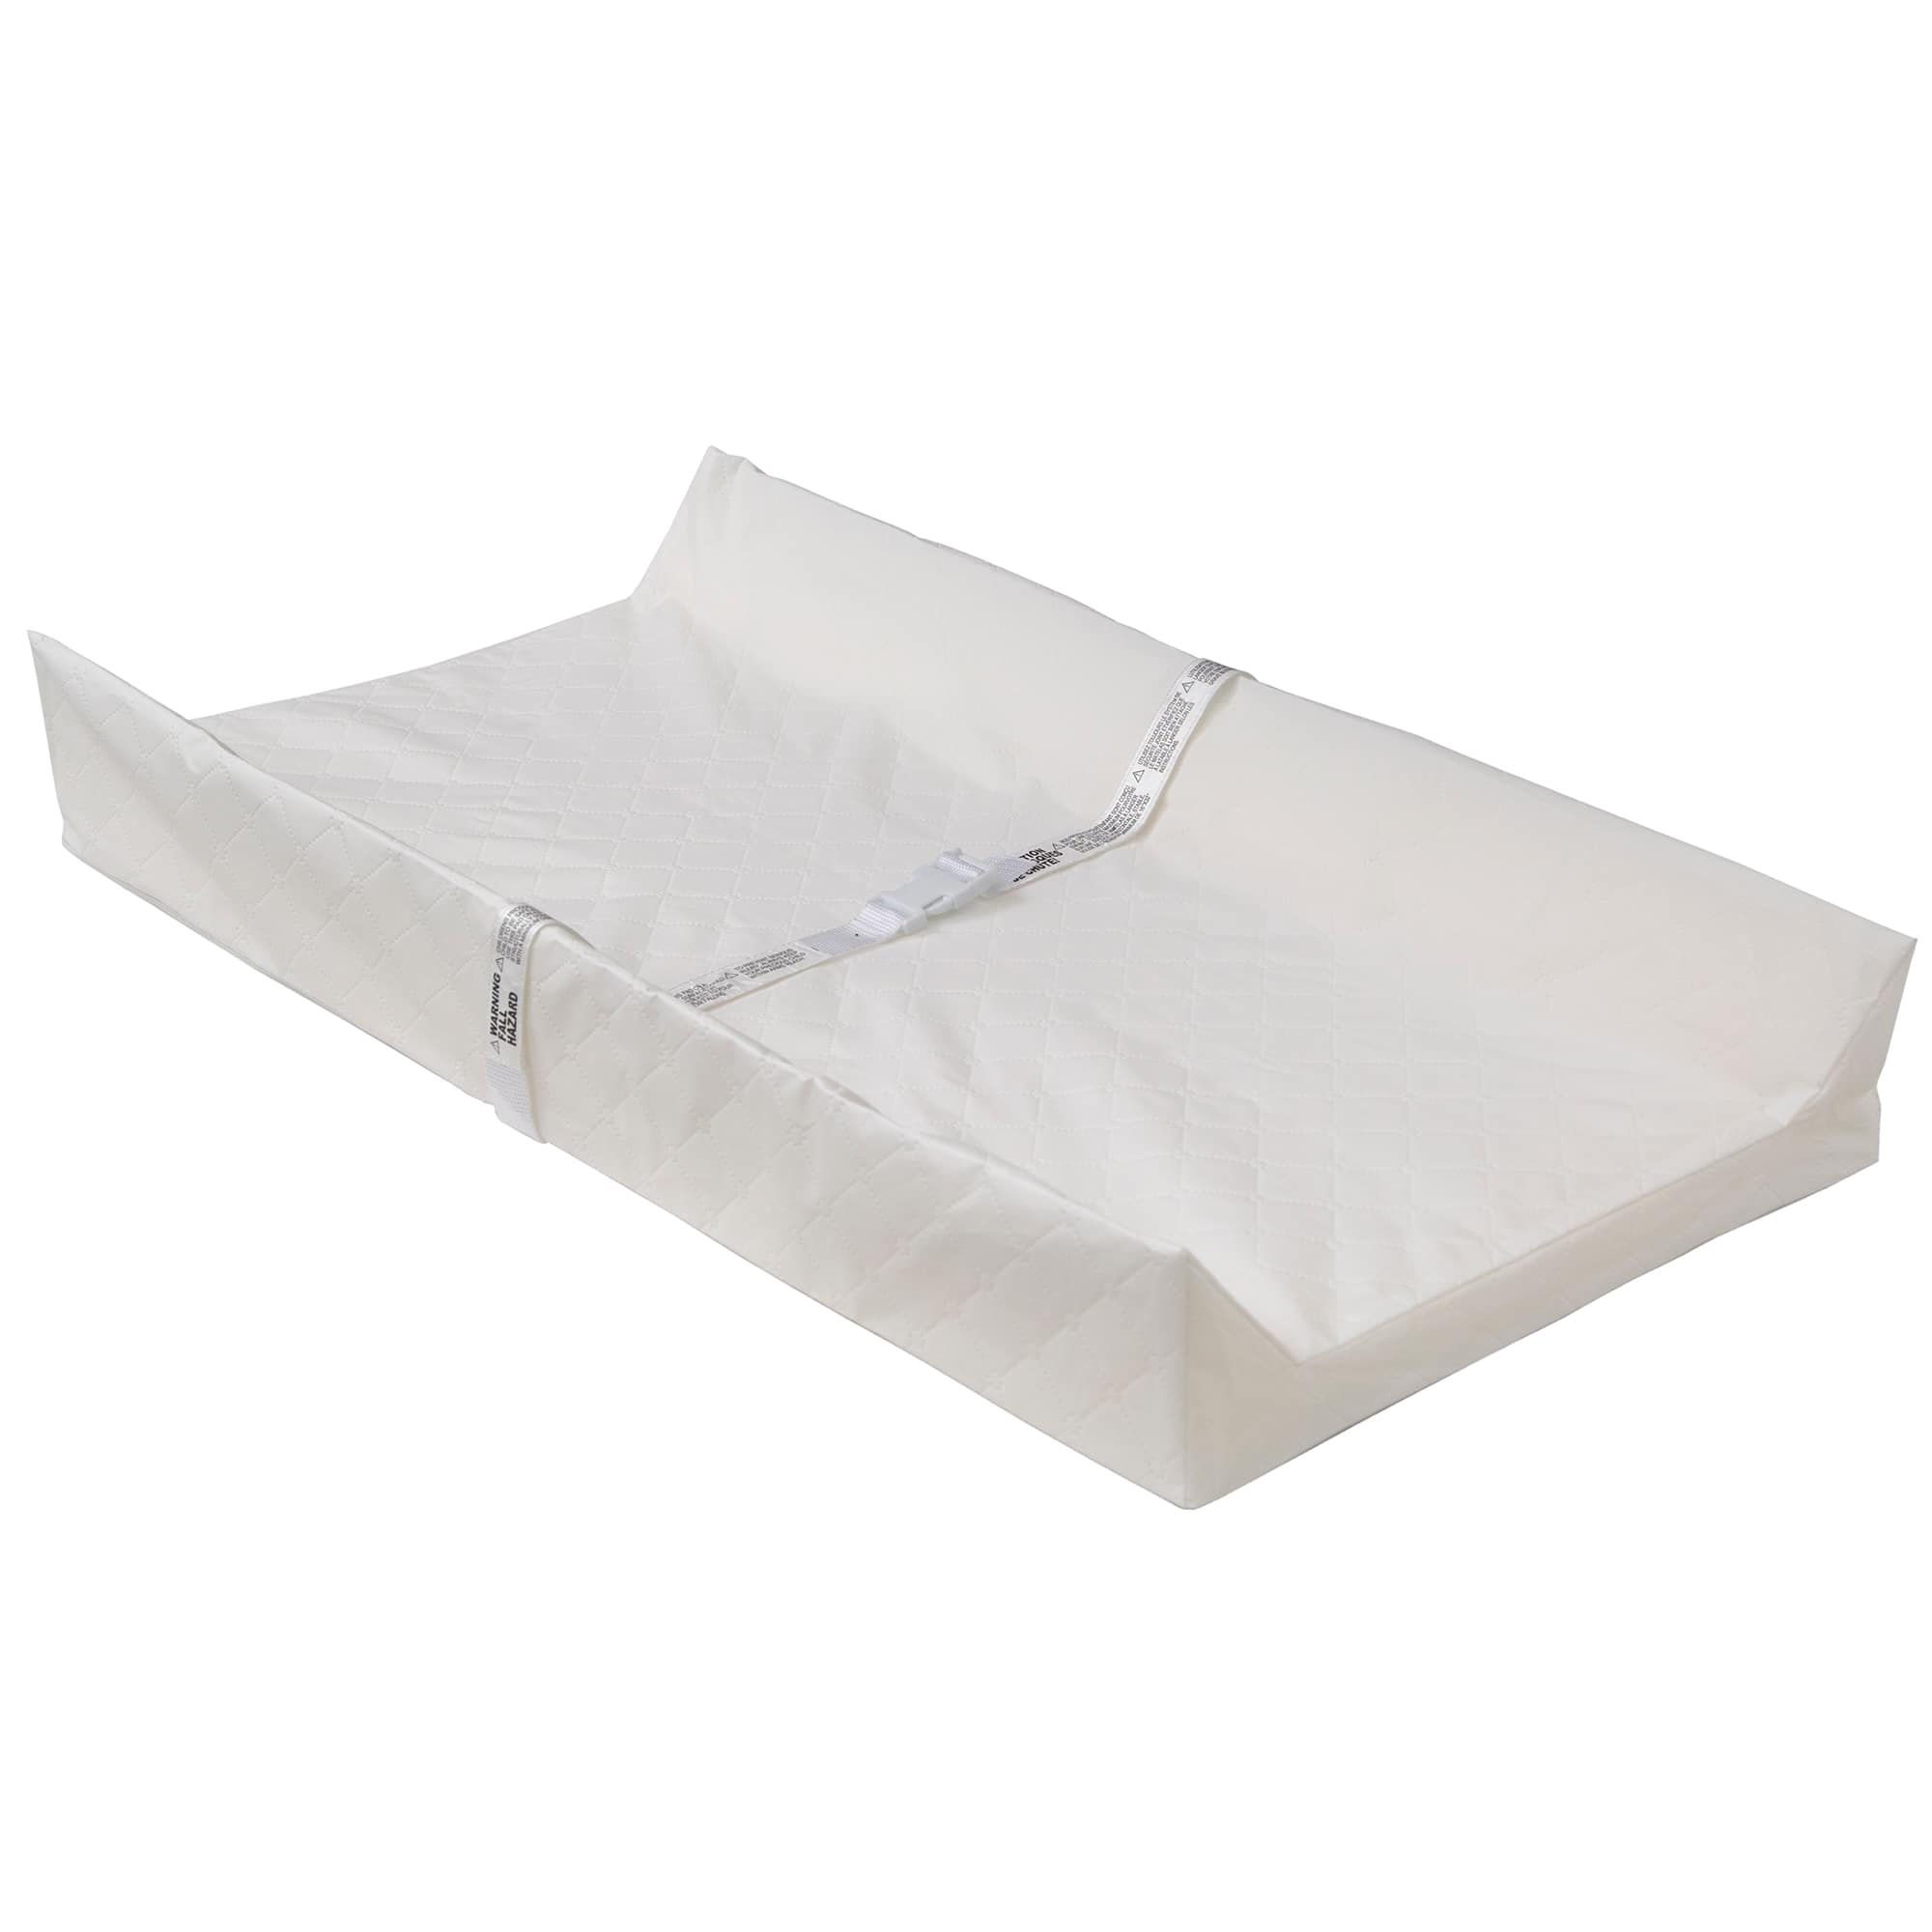 Delta Children Foam Contoured Changing Pad w/Waterproof Cover $13.99 at Walmart.com - F/S on $35 or with +